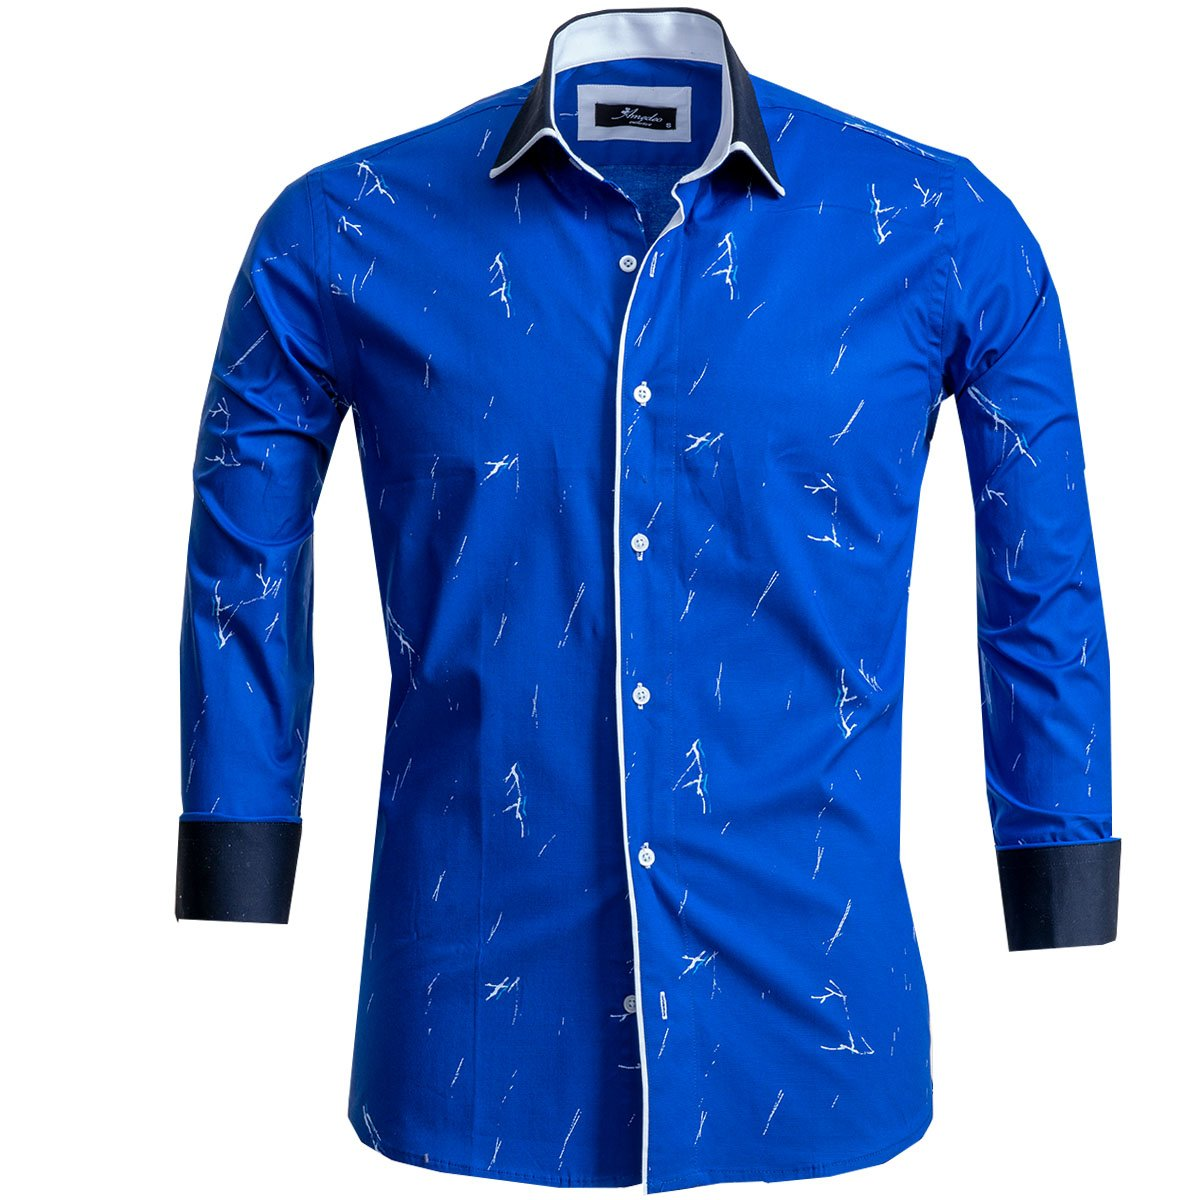 Medium Blue Mens Slim Fit Designer Dress Shirt - tailored Cotton Shirts for Work and Casual Wear - Amedeo Exclusive